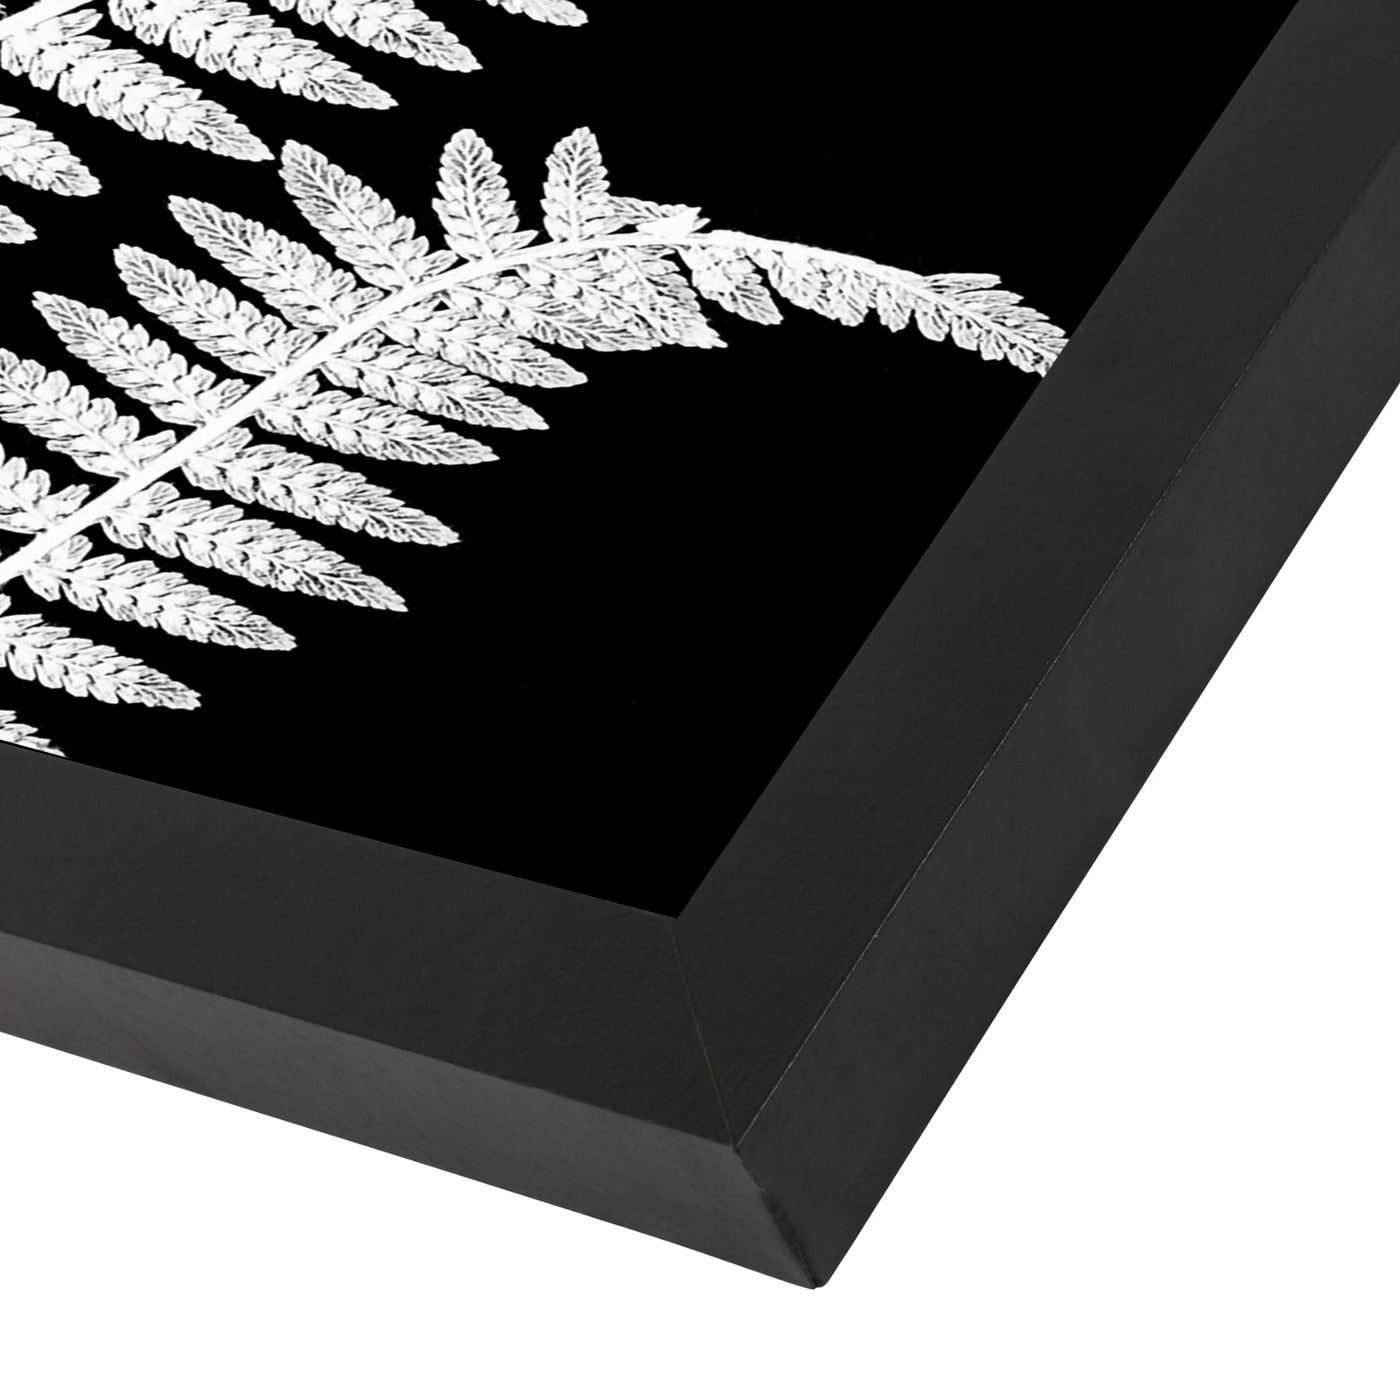 White Fern Ii By Chaos & Wonder Design - Black Framed Print - Wall Art - Americanflat